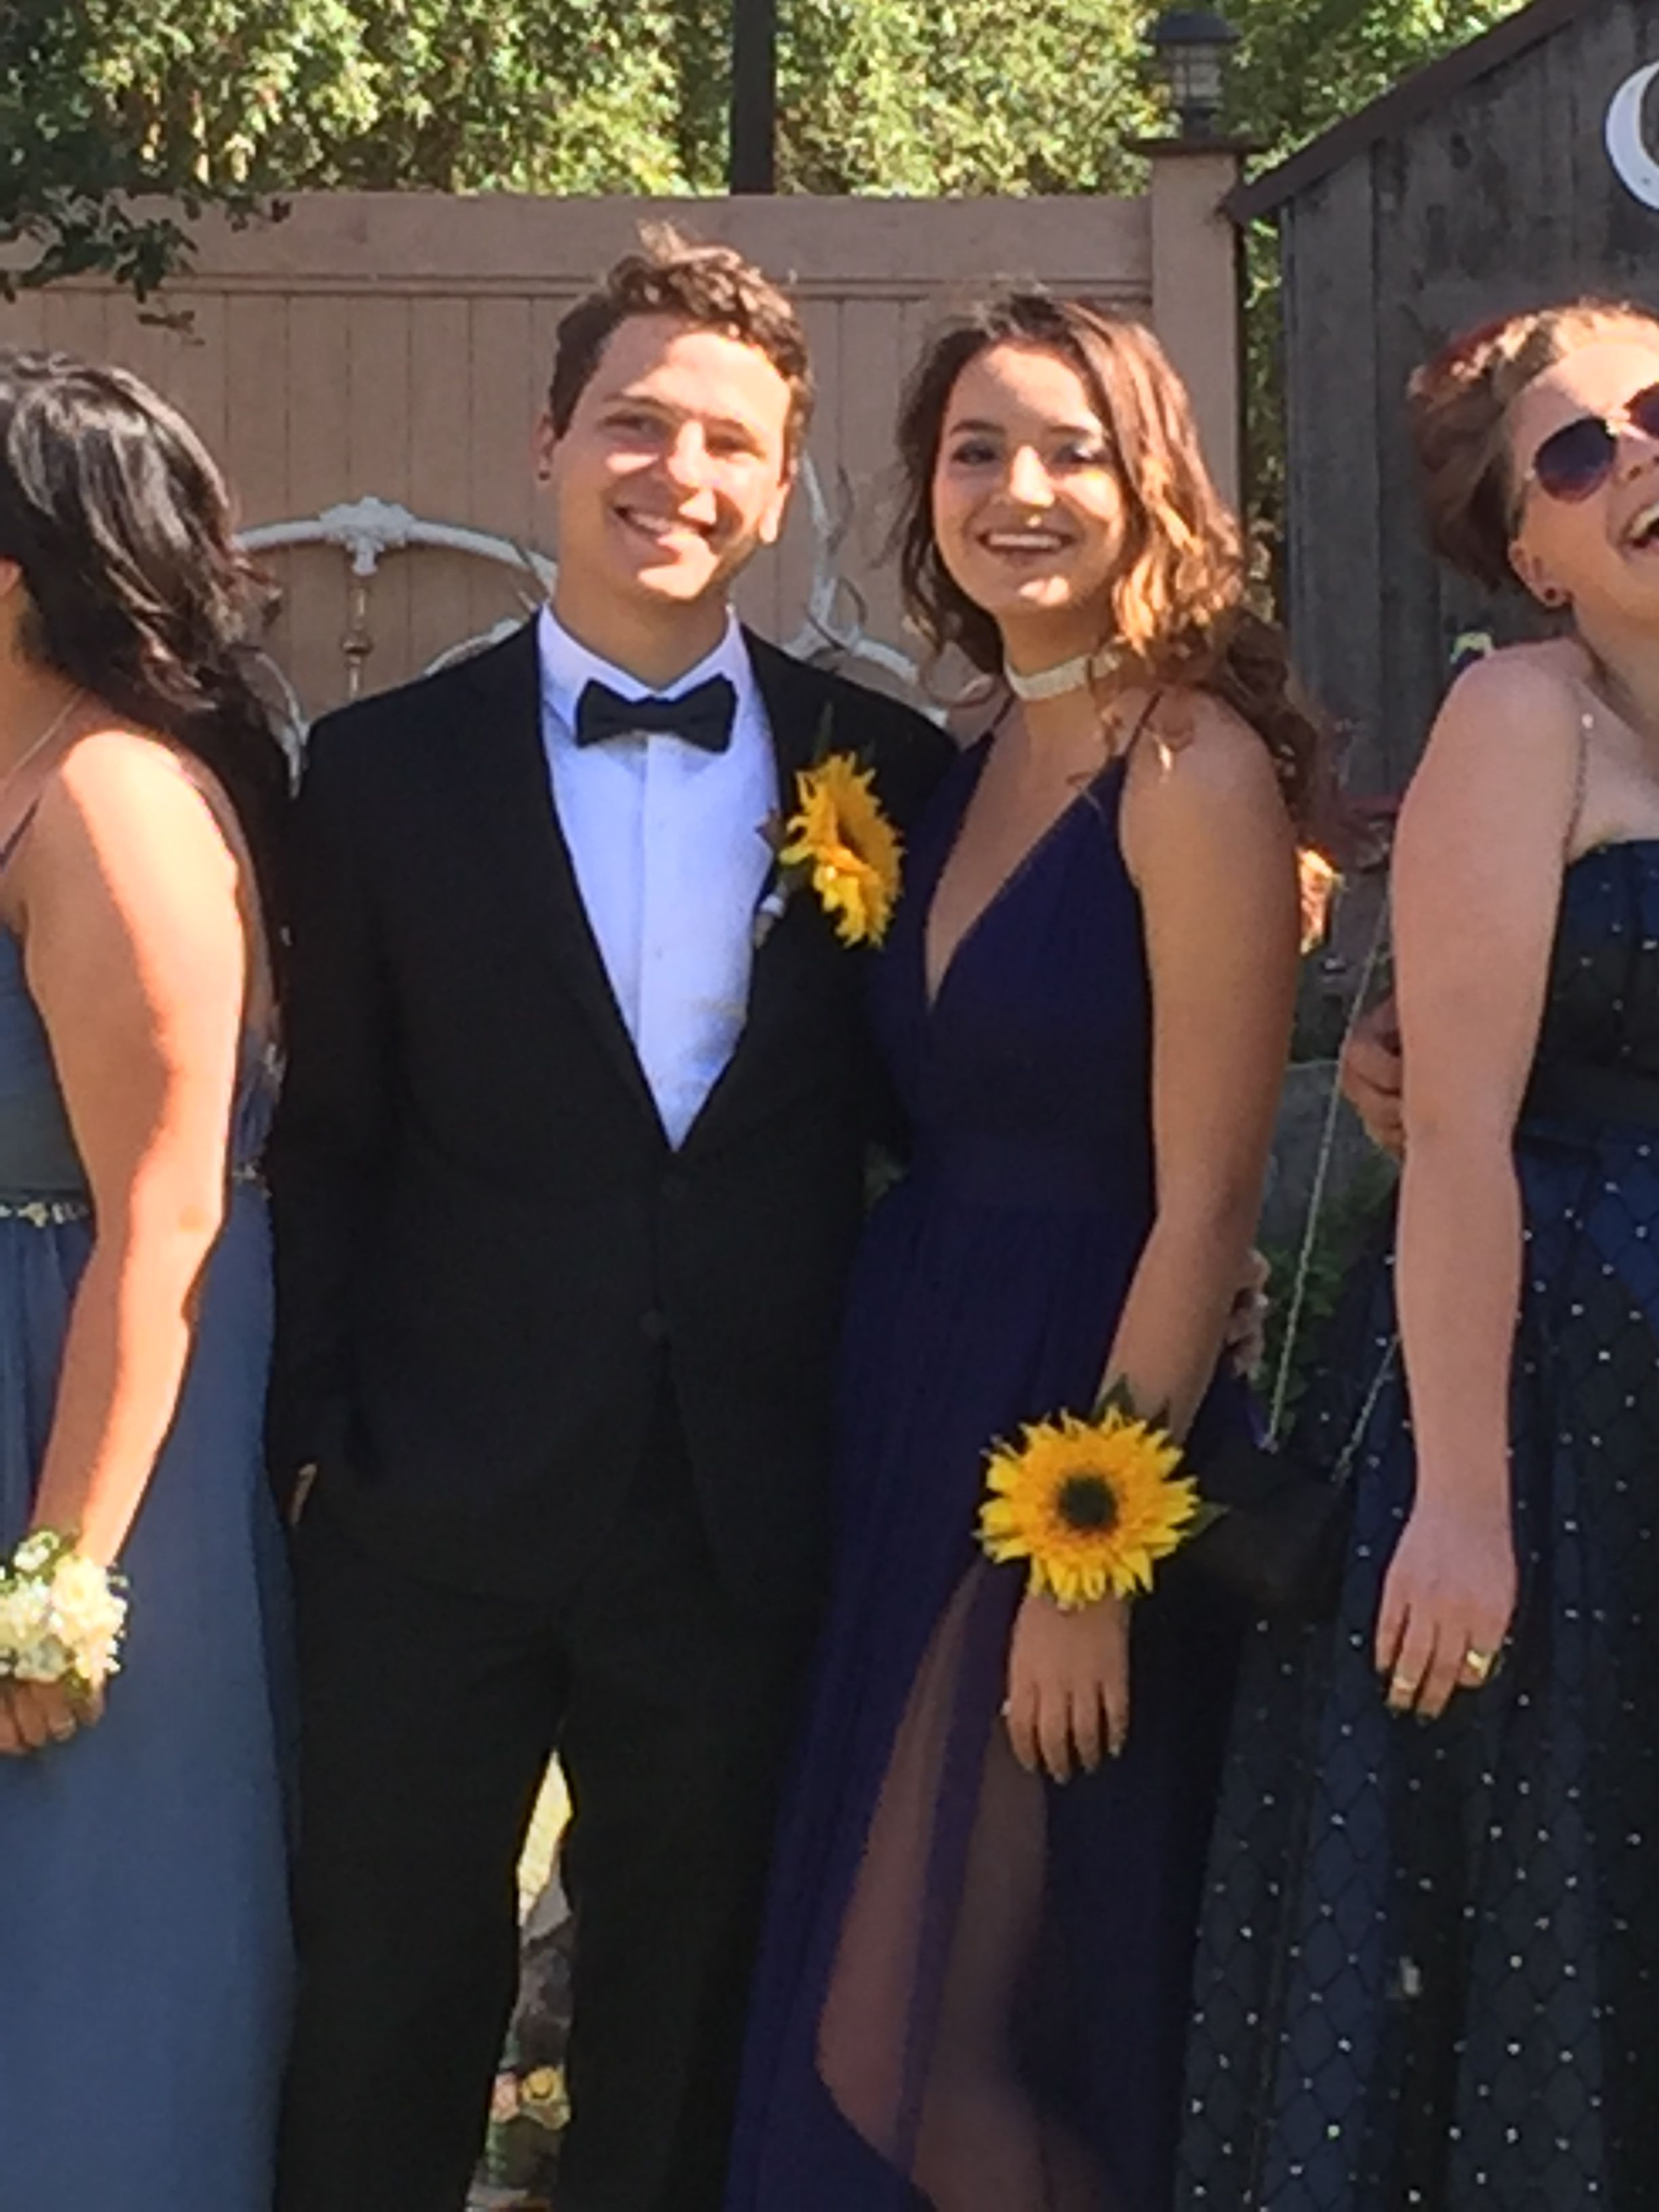 Gorgeous Sunflower Corsage And Boutonniere For Prom Or Any Special Occasion Made By Fresh Aire Flo Corsage Prom Boutonnieres Prom Prom Corsage And Boutonniere [ 3264 x 2448 Pixel ]